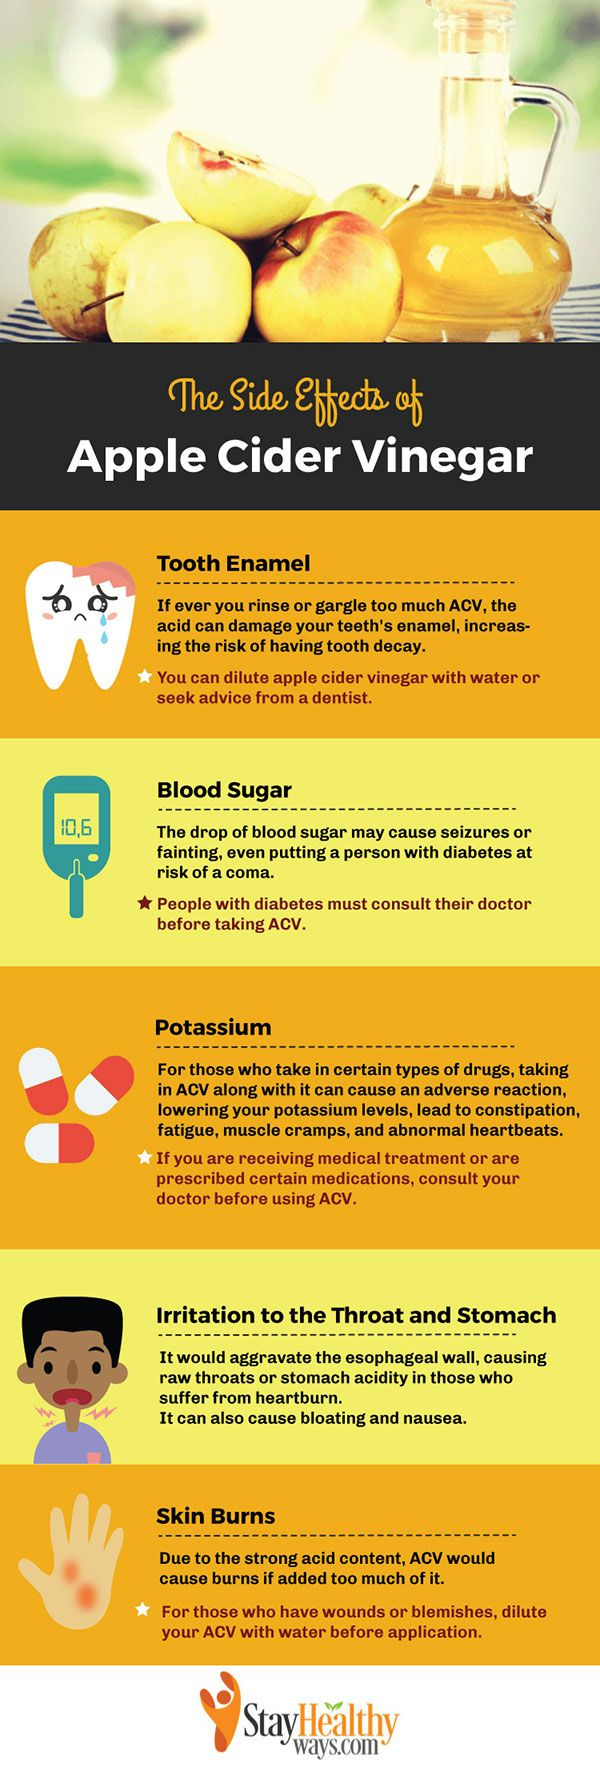 side effects of apple cider vinegar infographic